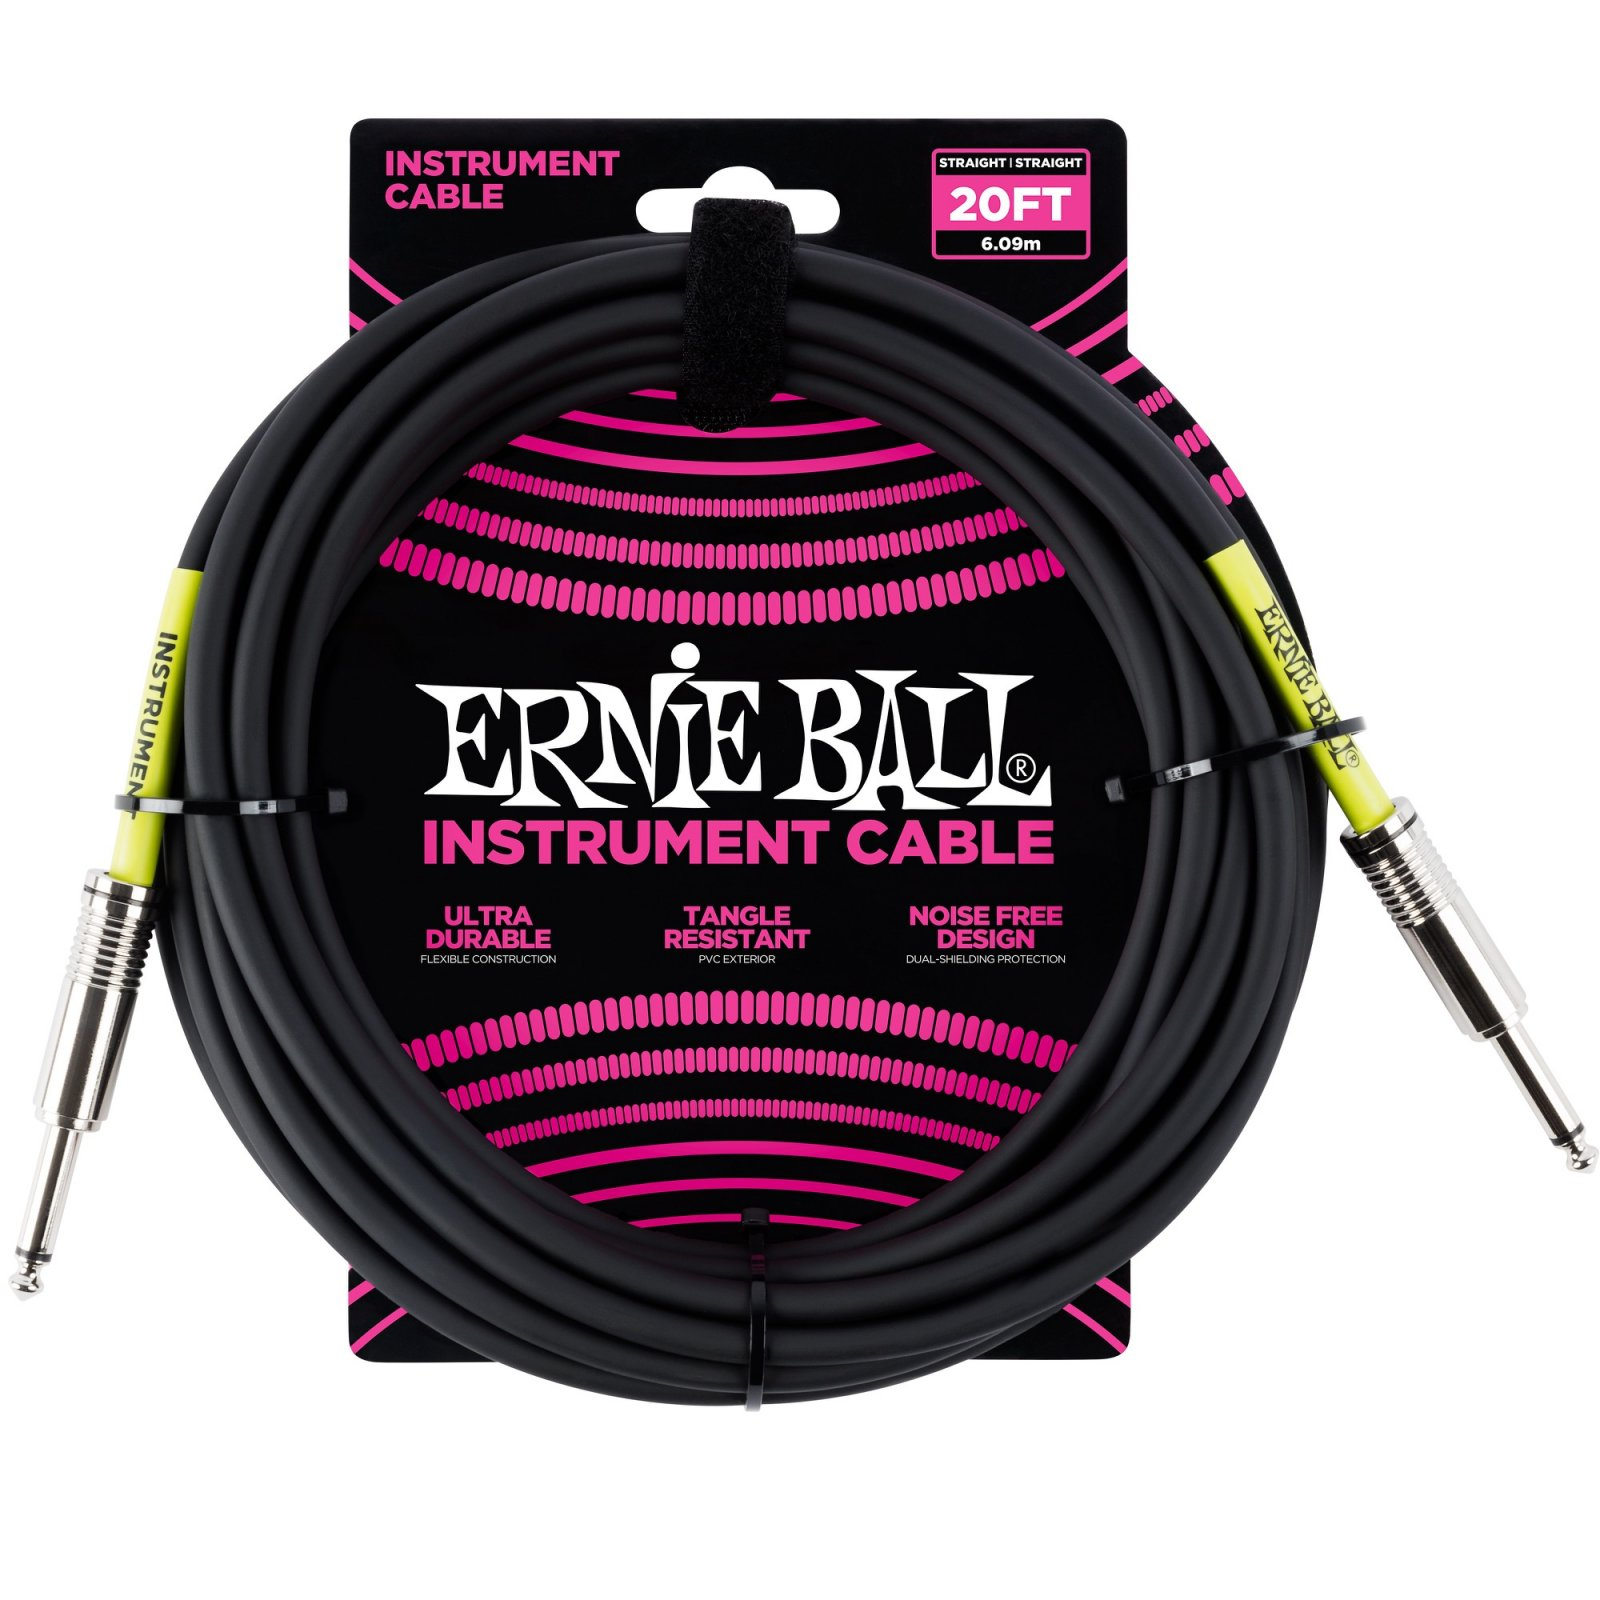 Ernie Ball Instrument Cable 20'